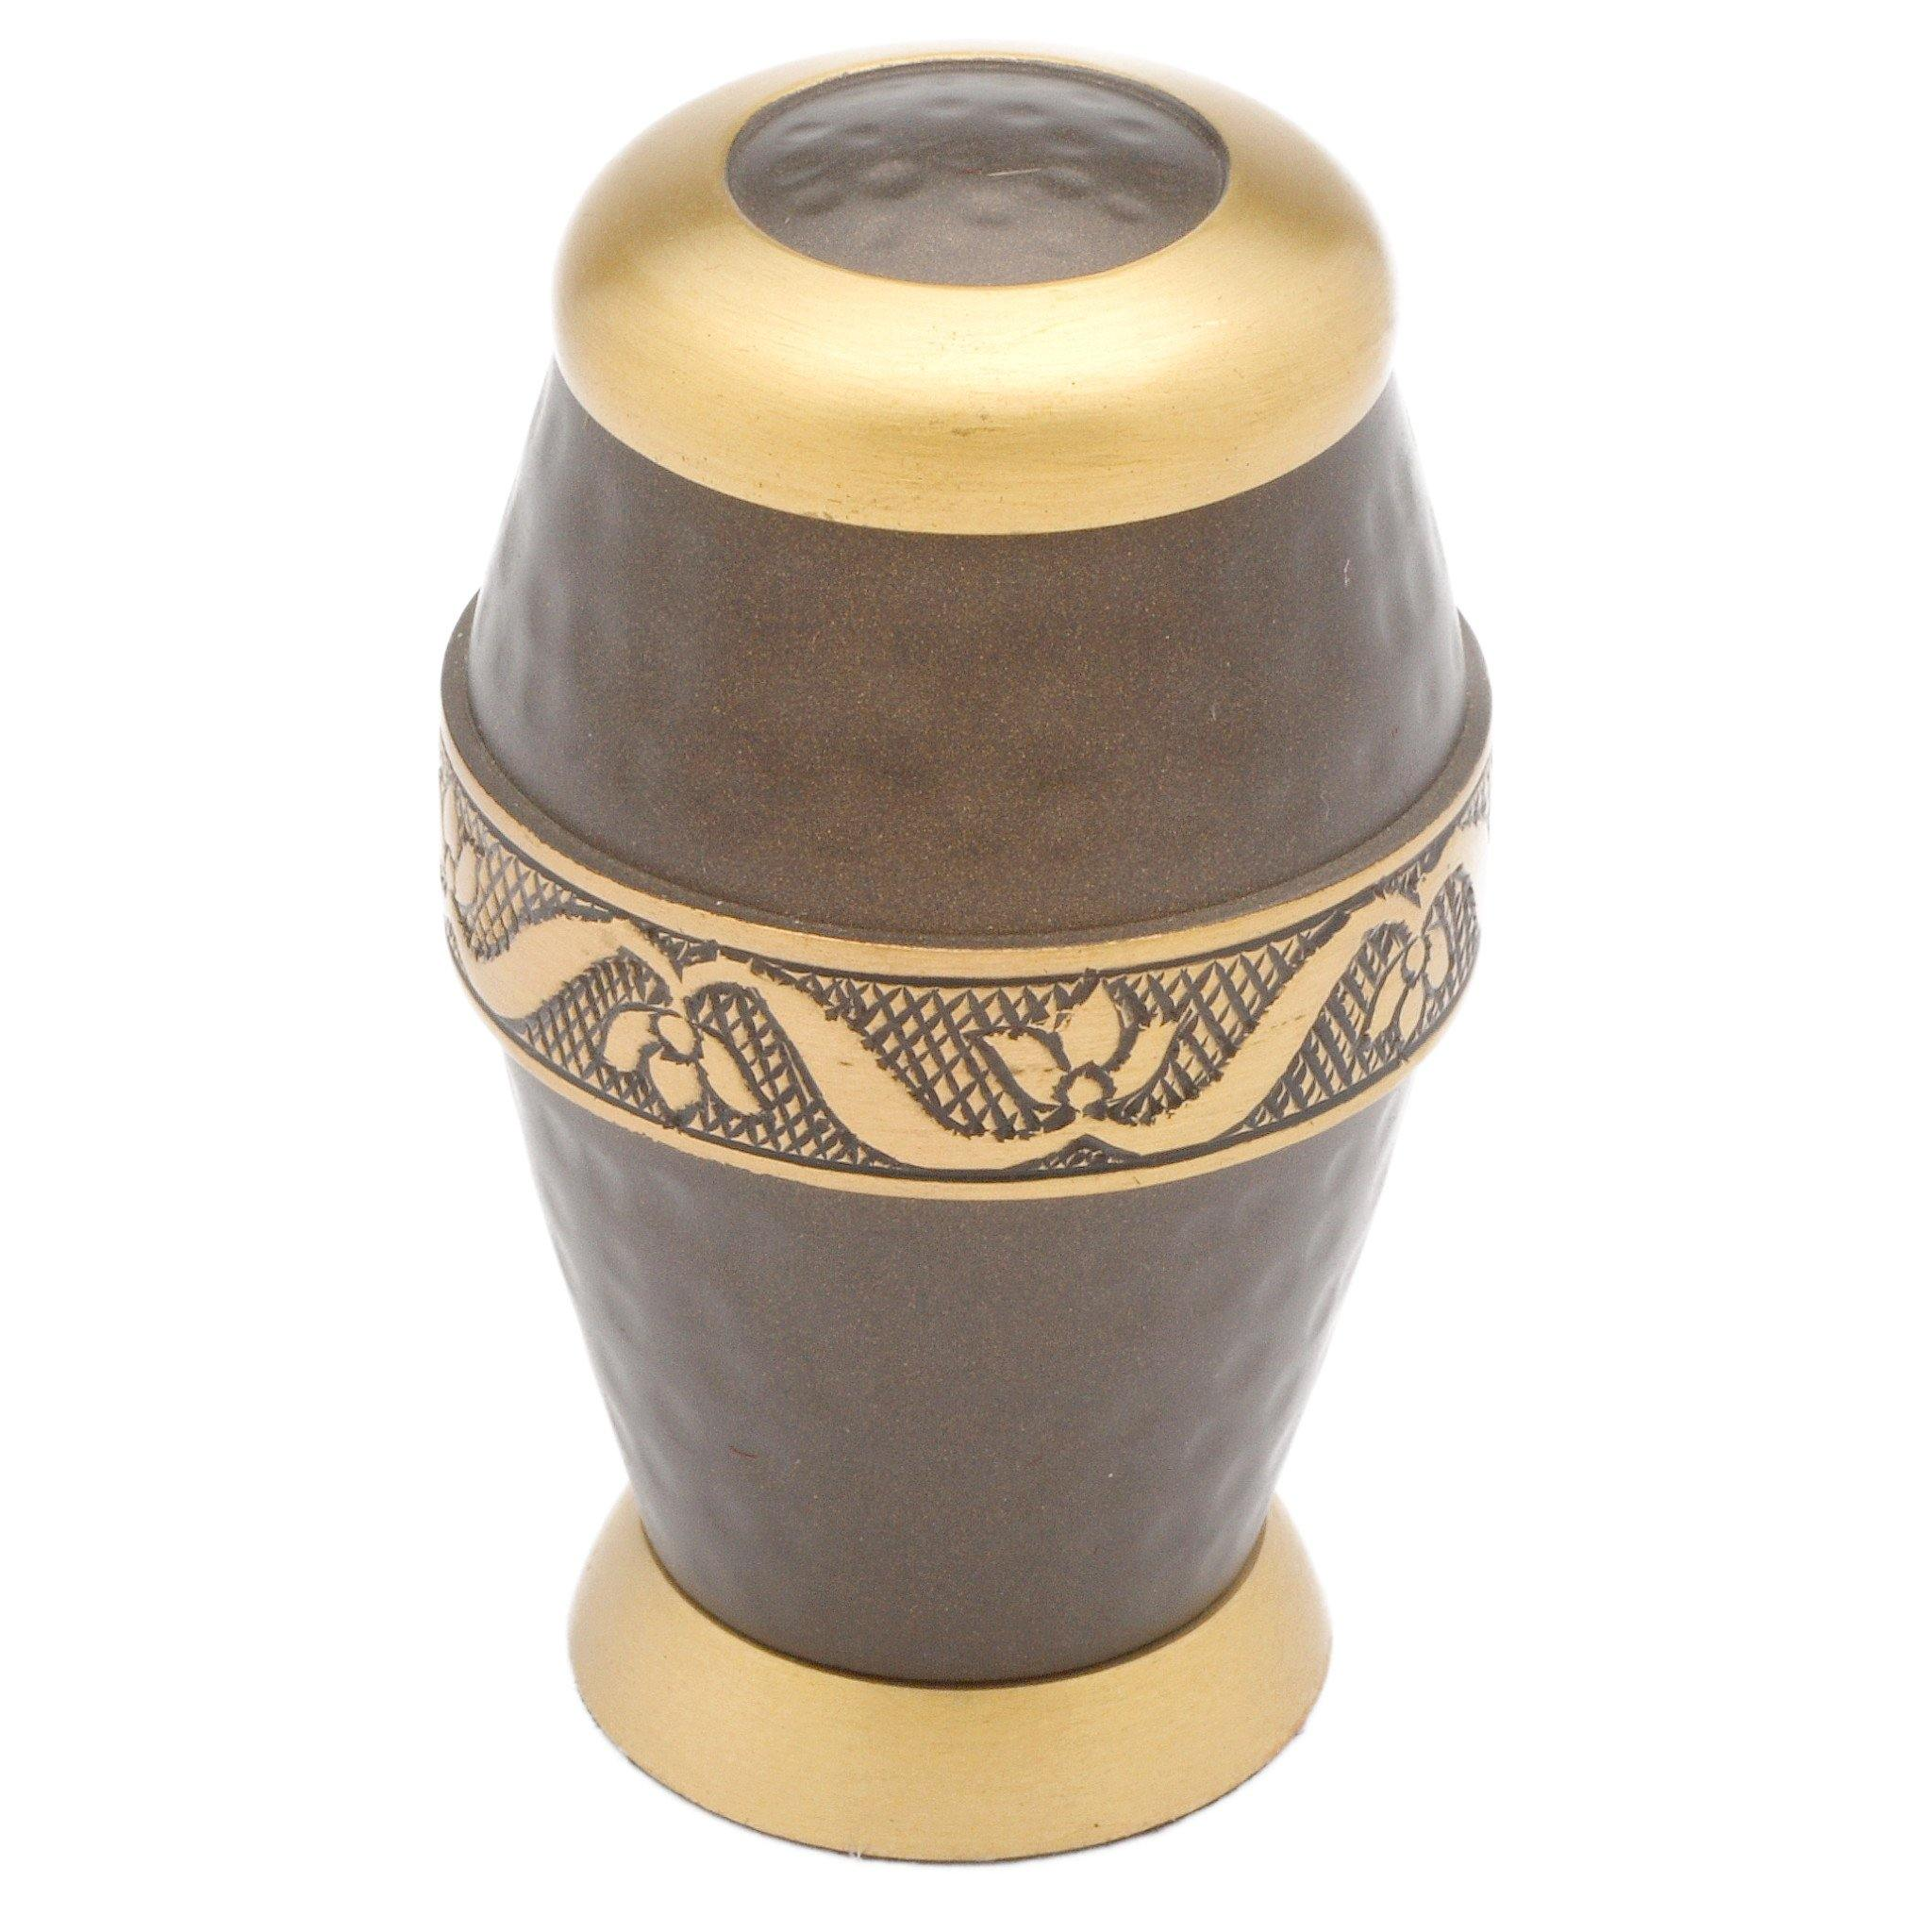 Ascot Cremation Ashes Keepsake Mini Urn - Urns UK